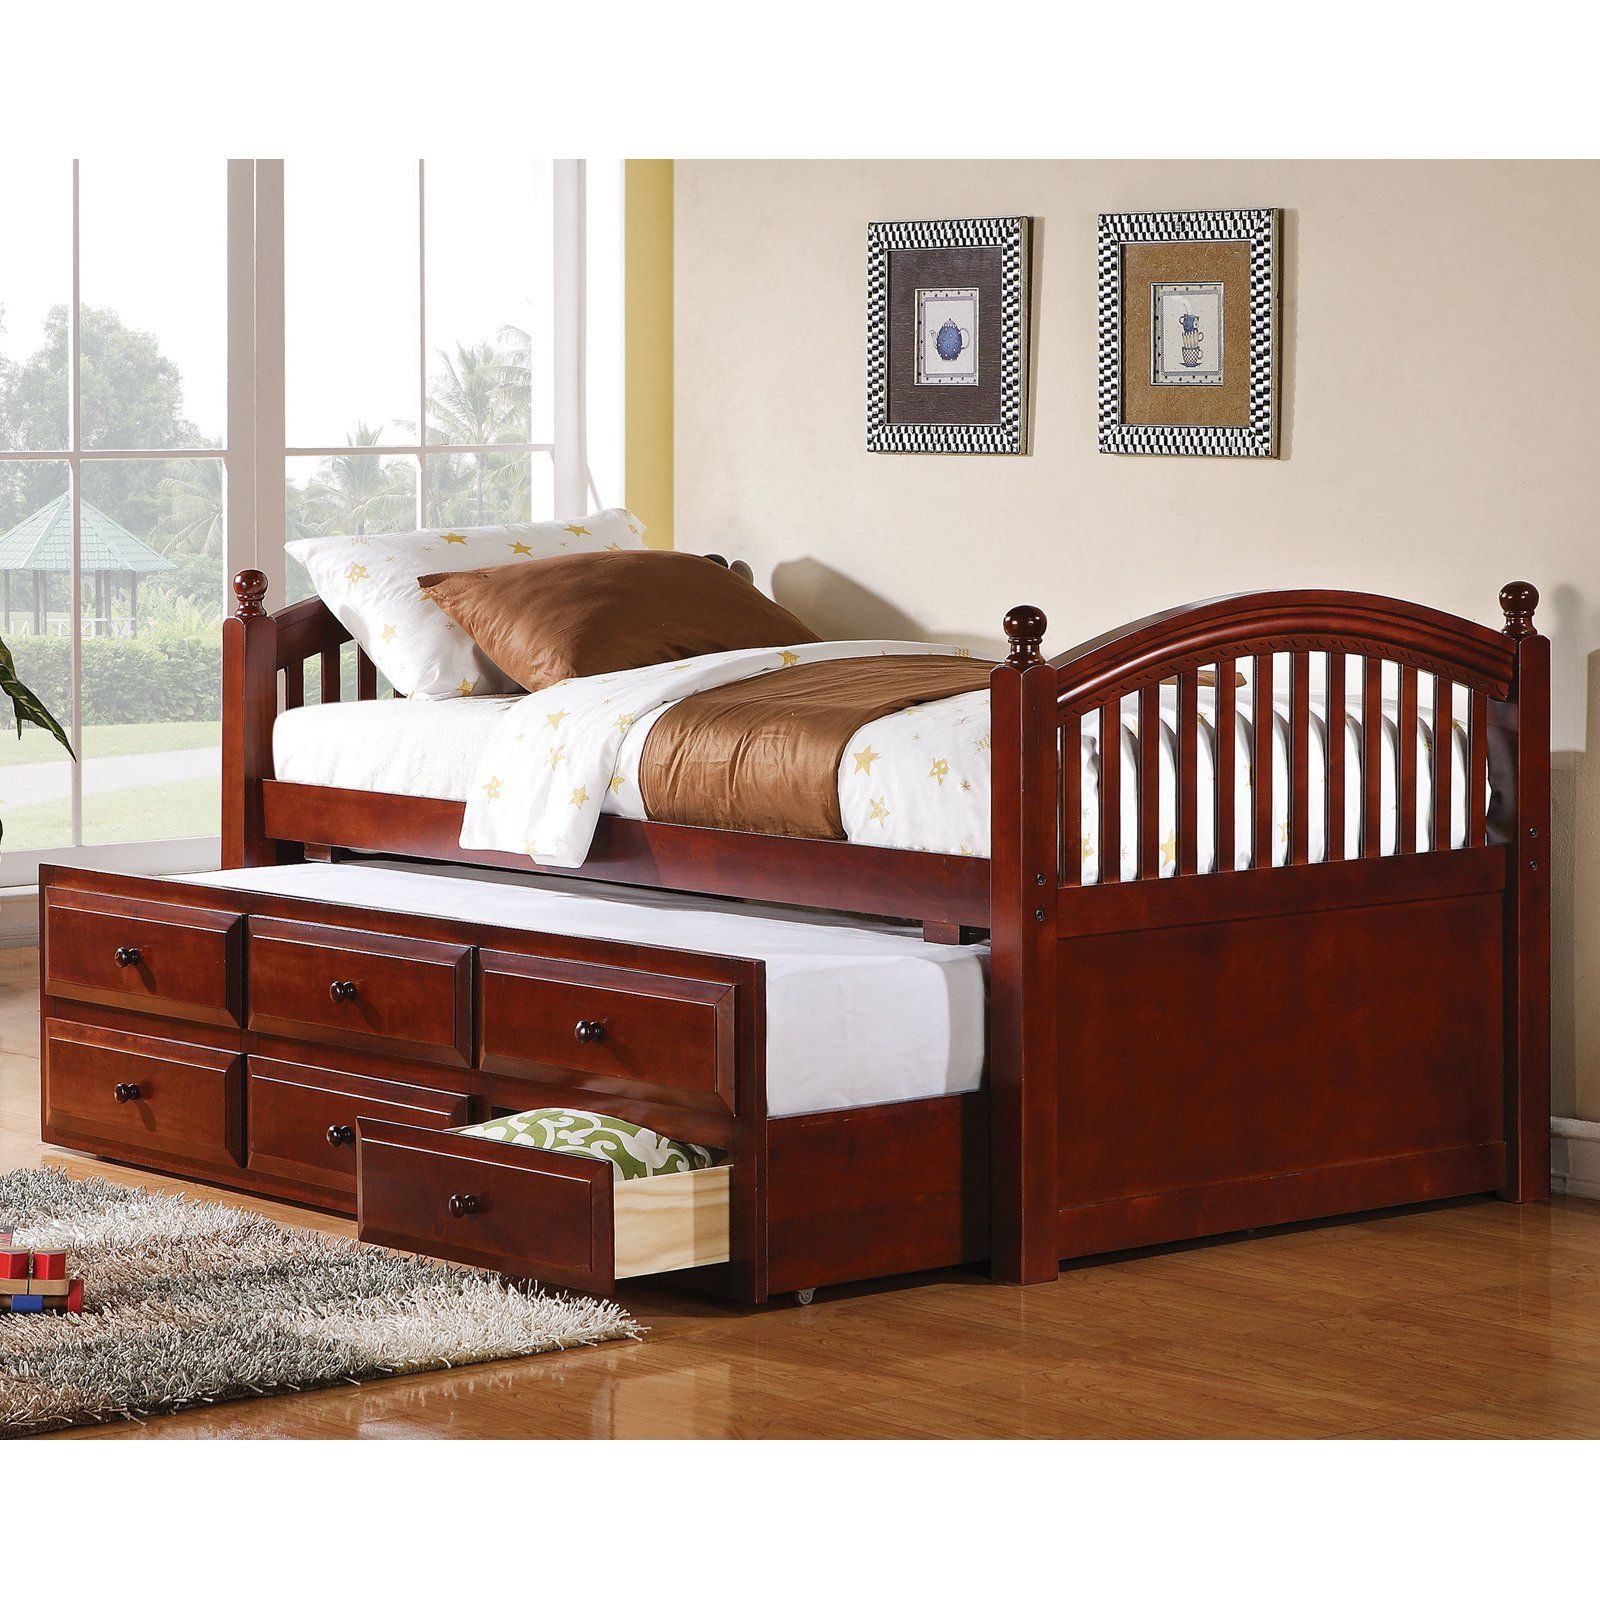 Coaster Furniture Daybeds By Coaster Captains Daybed With Trundle